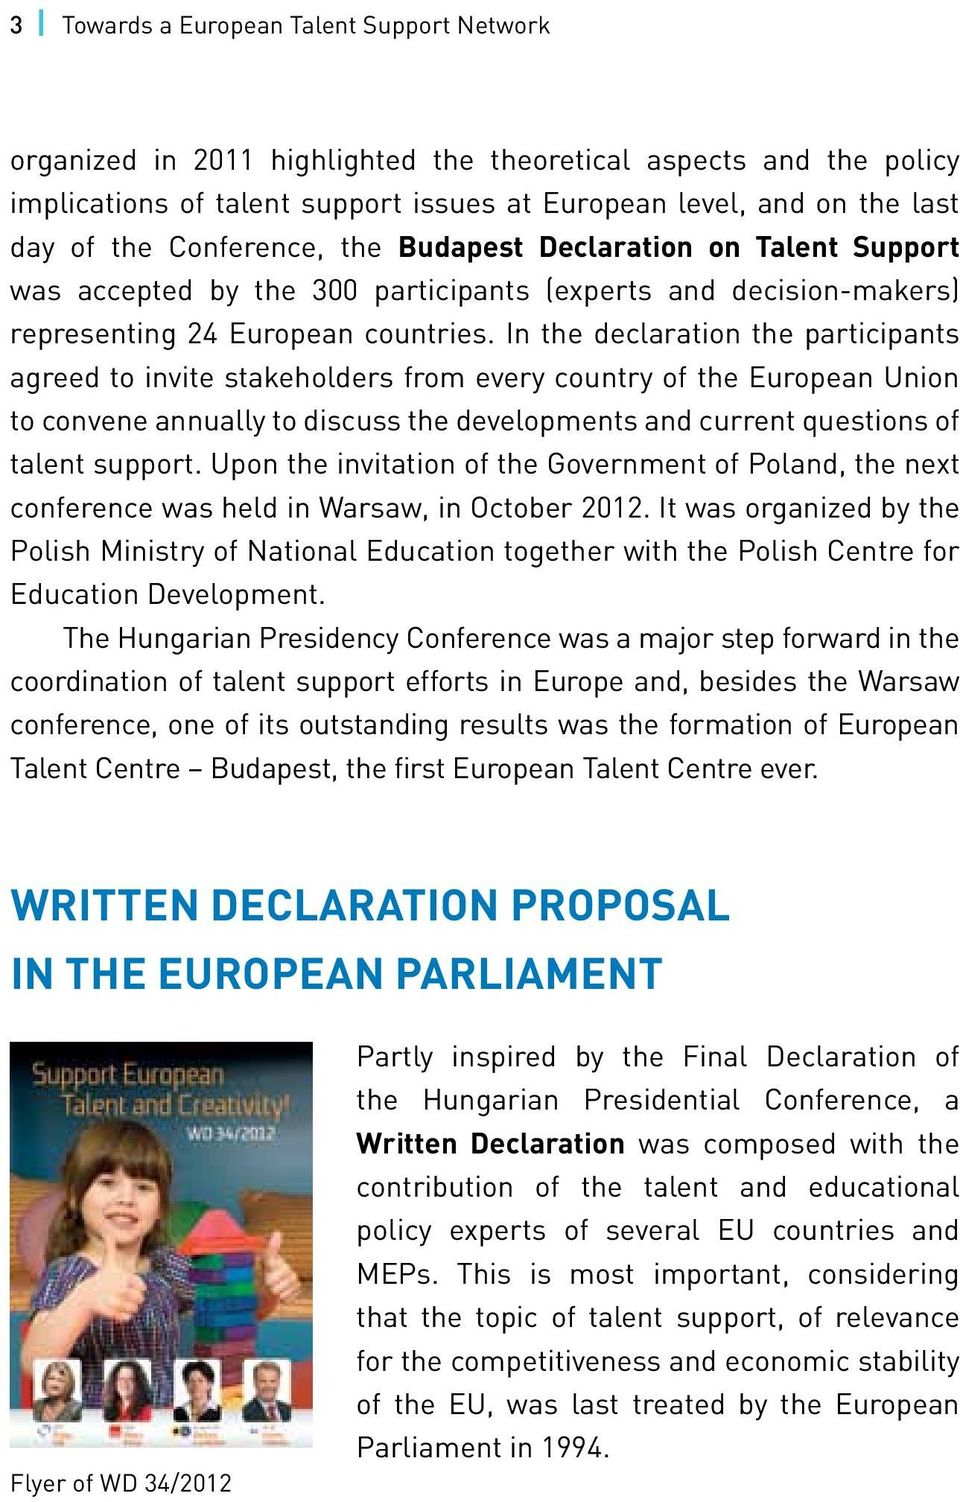 In the declaration the participants agreed to invite stakeholders from every country of the European Union to convene annually to discuss the developments and current questions of talent support.